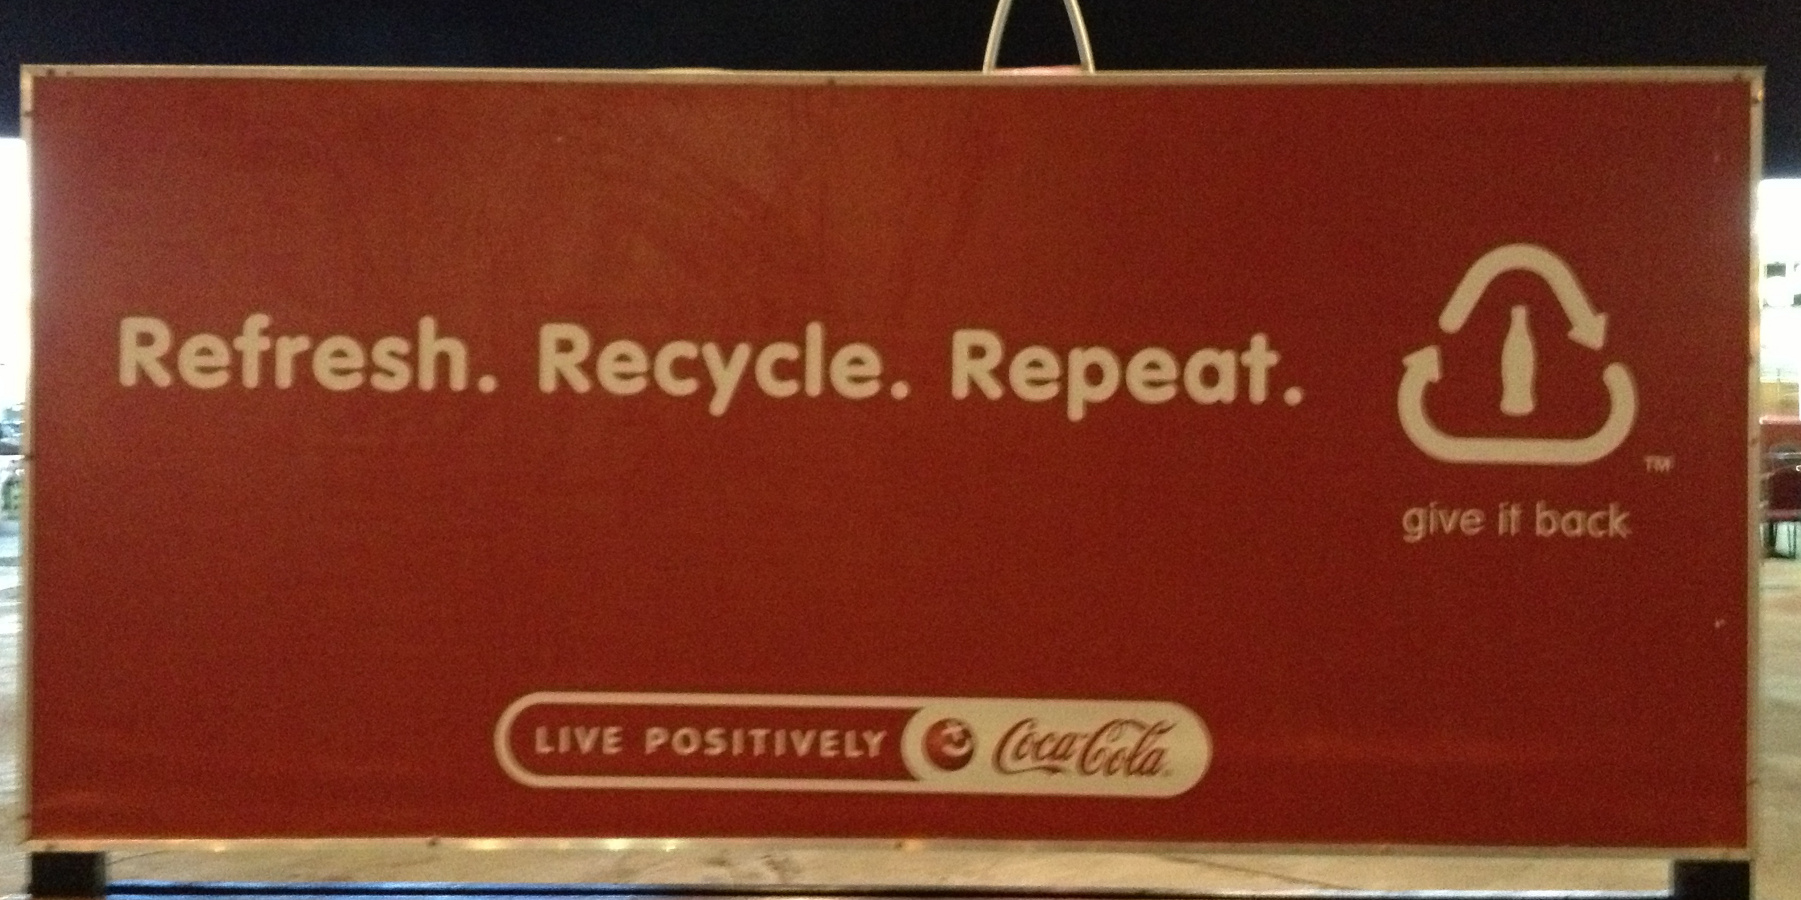 Refresh. Recycle. Repeat.